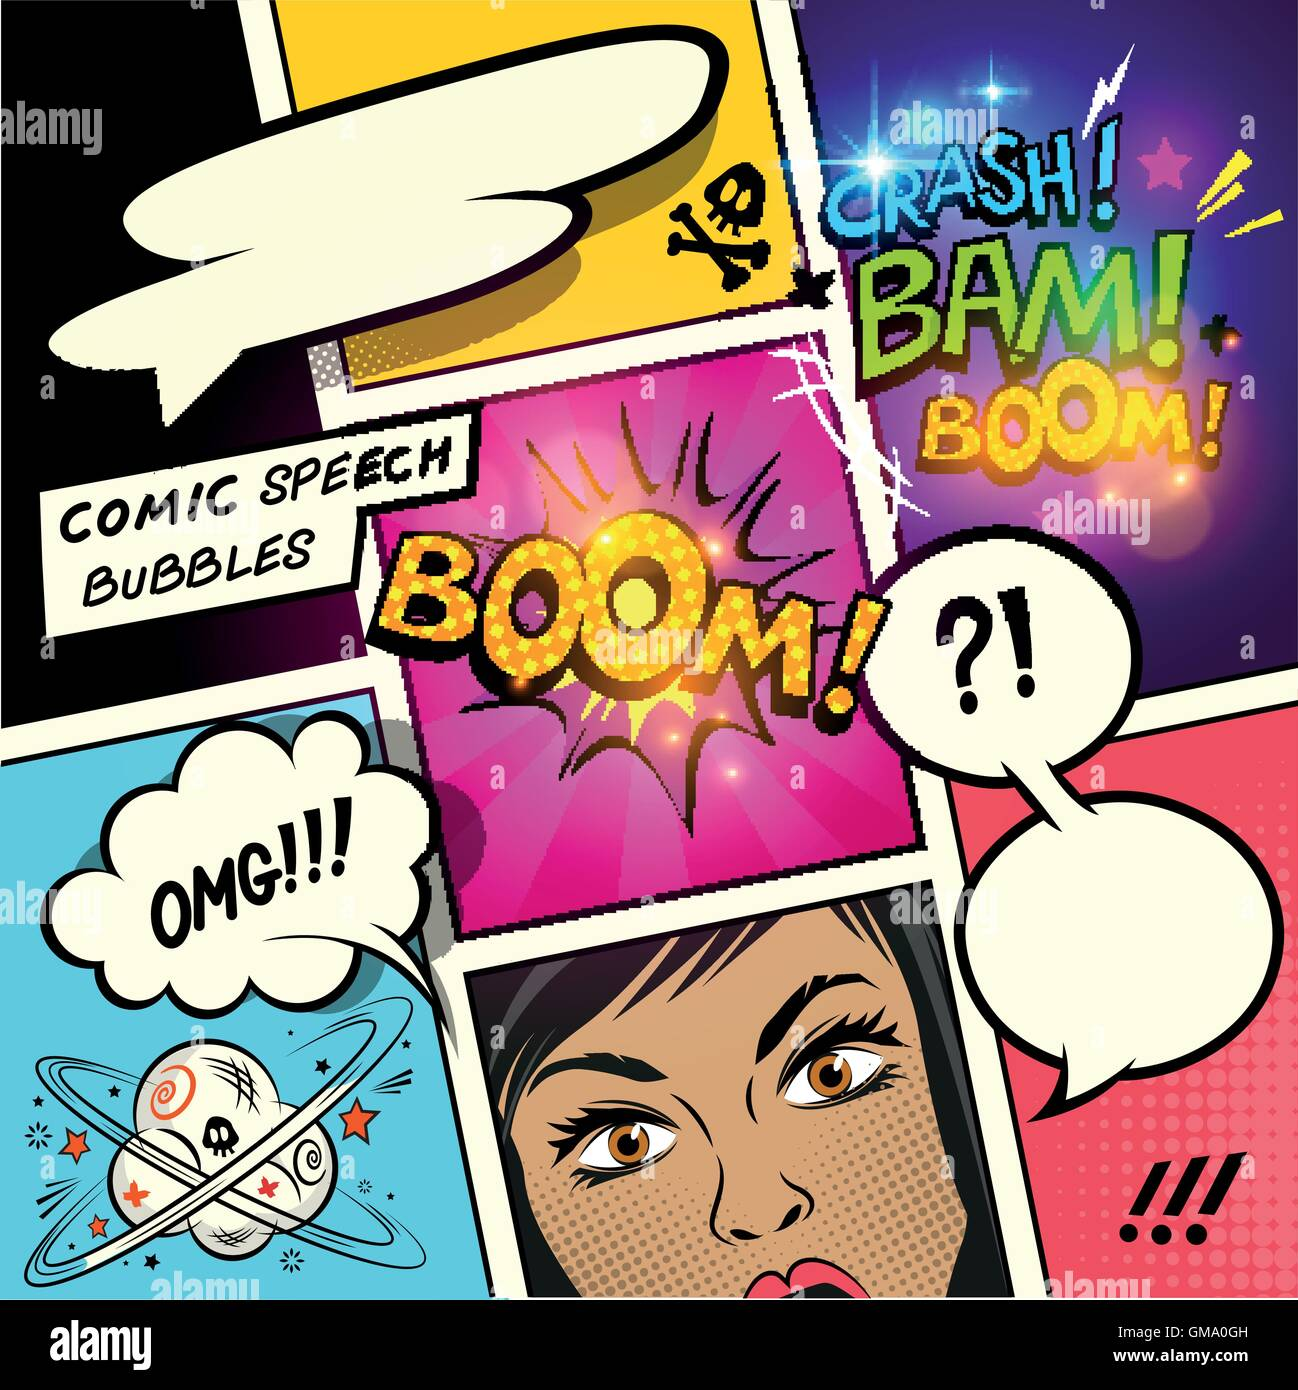 Speech Bubbles On A Comic Strip Background With Cartoon